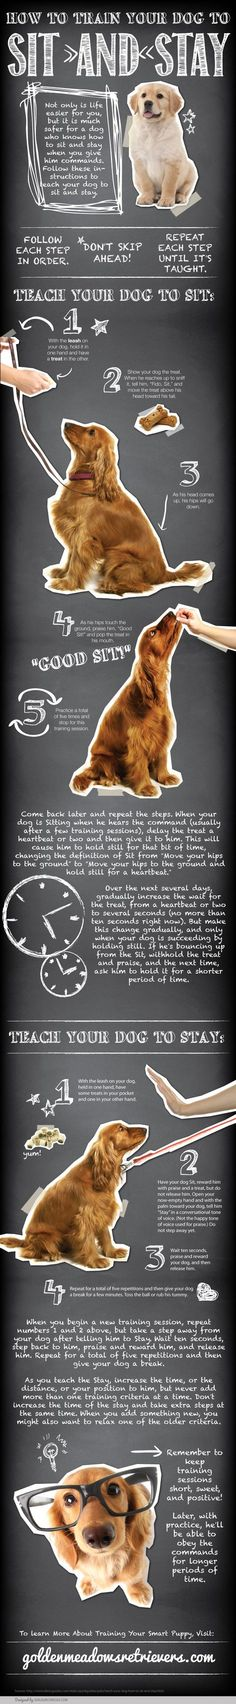 Pupy Training Treats - Pupy Training Treats - [Infographic] Teach Your Dog to Sit and Stay - www. - How to train a puppy? - How to train a puppy? Golden Retrievers, Puppies Tips, Poodle Puppies, Lab Puppies, Puppy Care, Pet Care, Dog Care Tips, Pet Tips, Dog Hacks